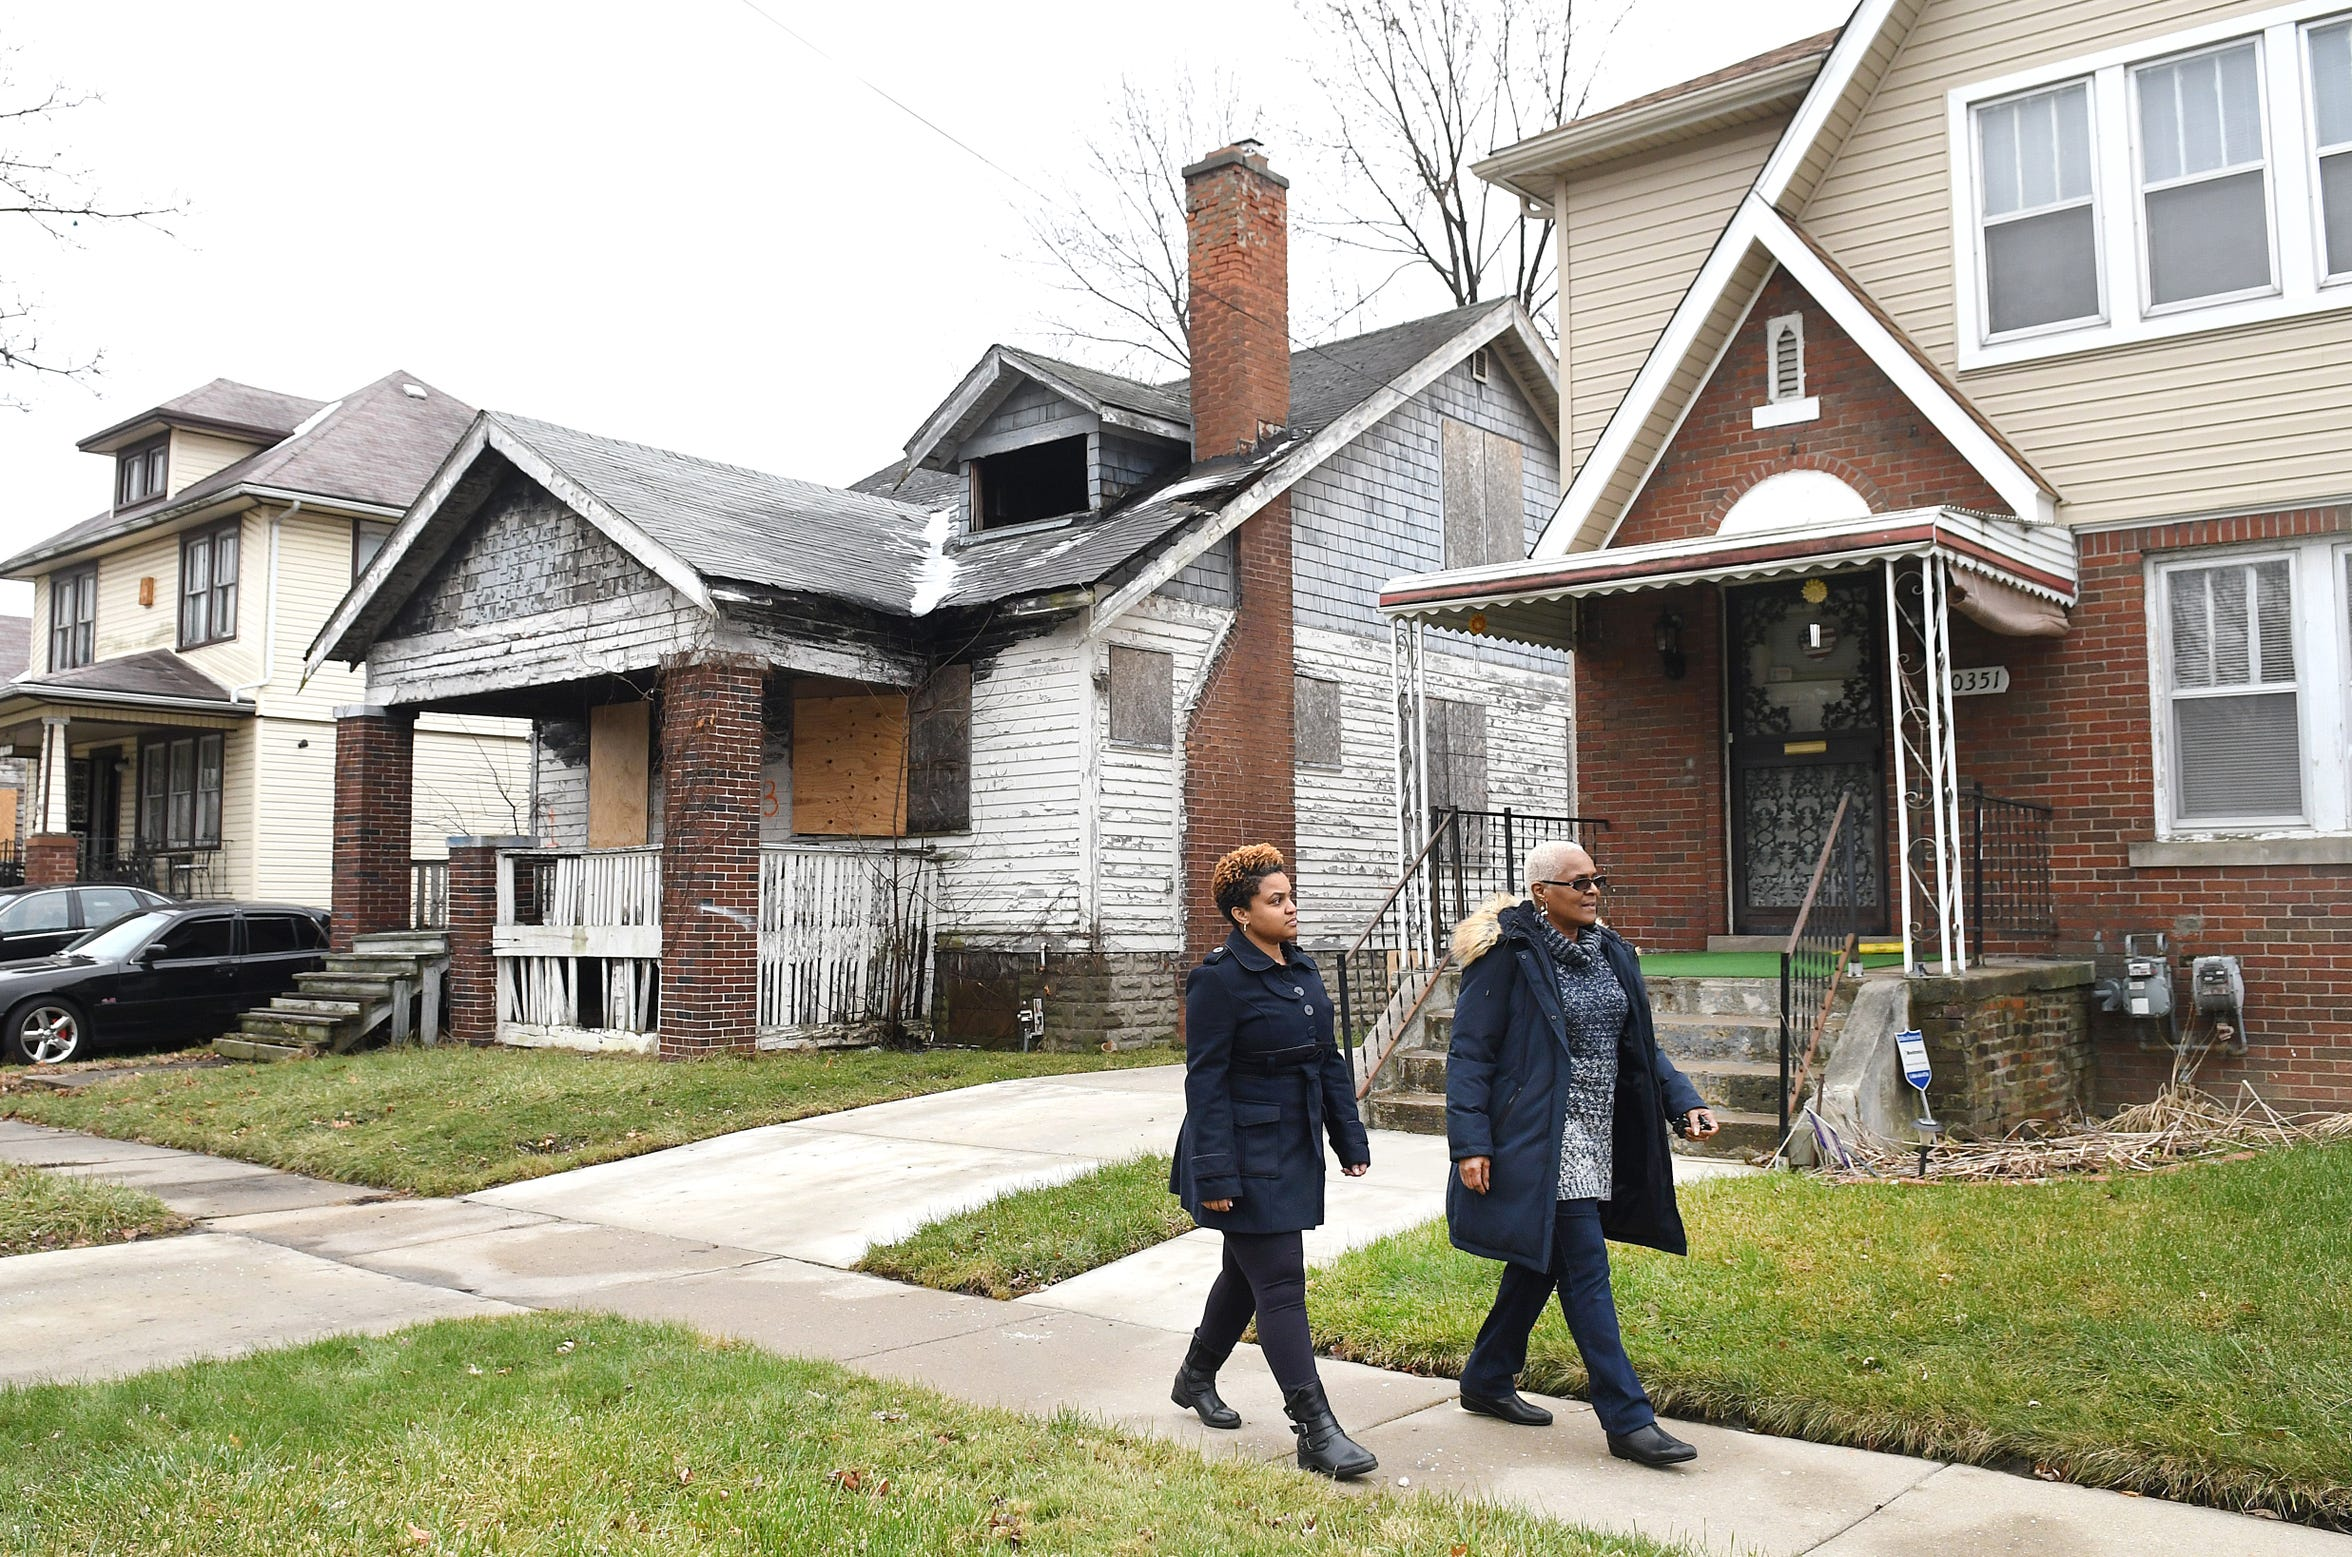 Jackie Smith of Detroit and her daughter, Kellie, walk outside their family home in Detroit passing a long-vacant house (at left) that Jackie has been trying to get knocked down and cleared away.